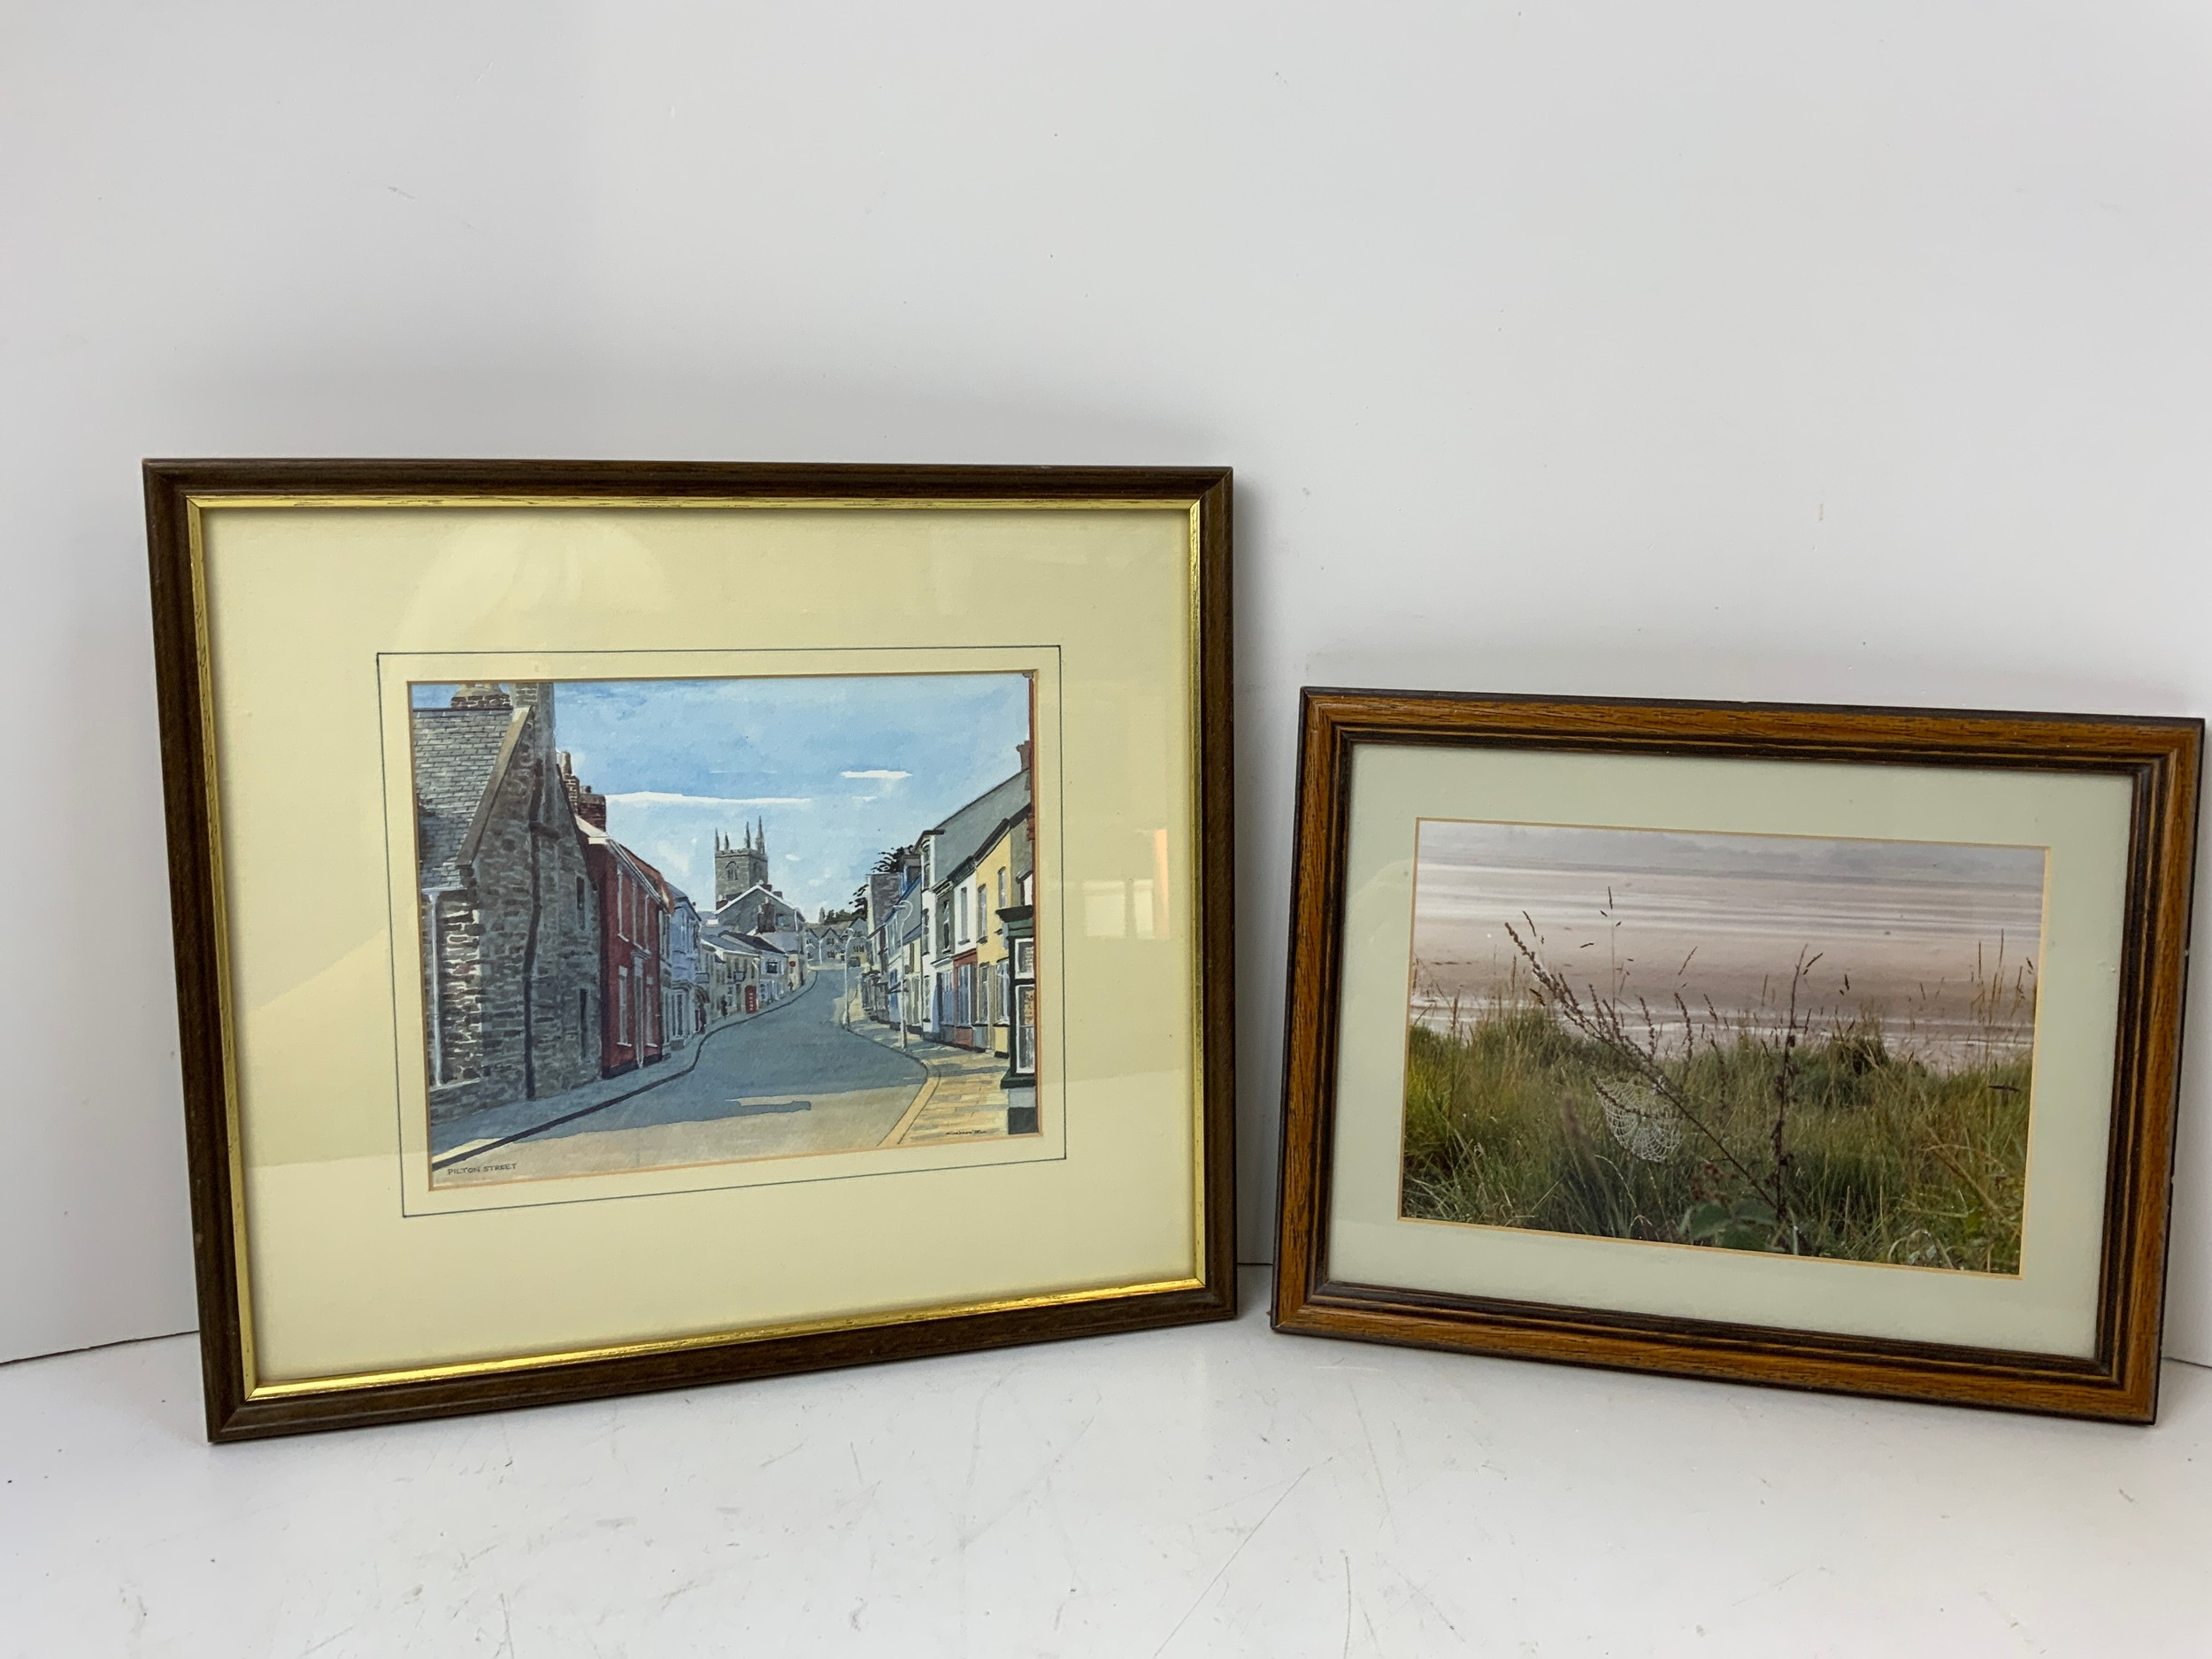 Framed Pictures - Pilton Street and Seashore